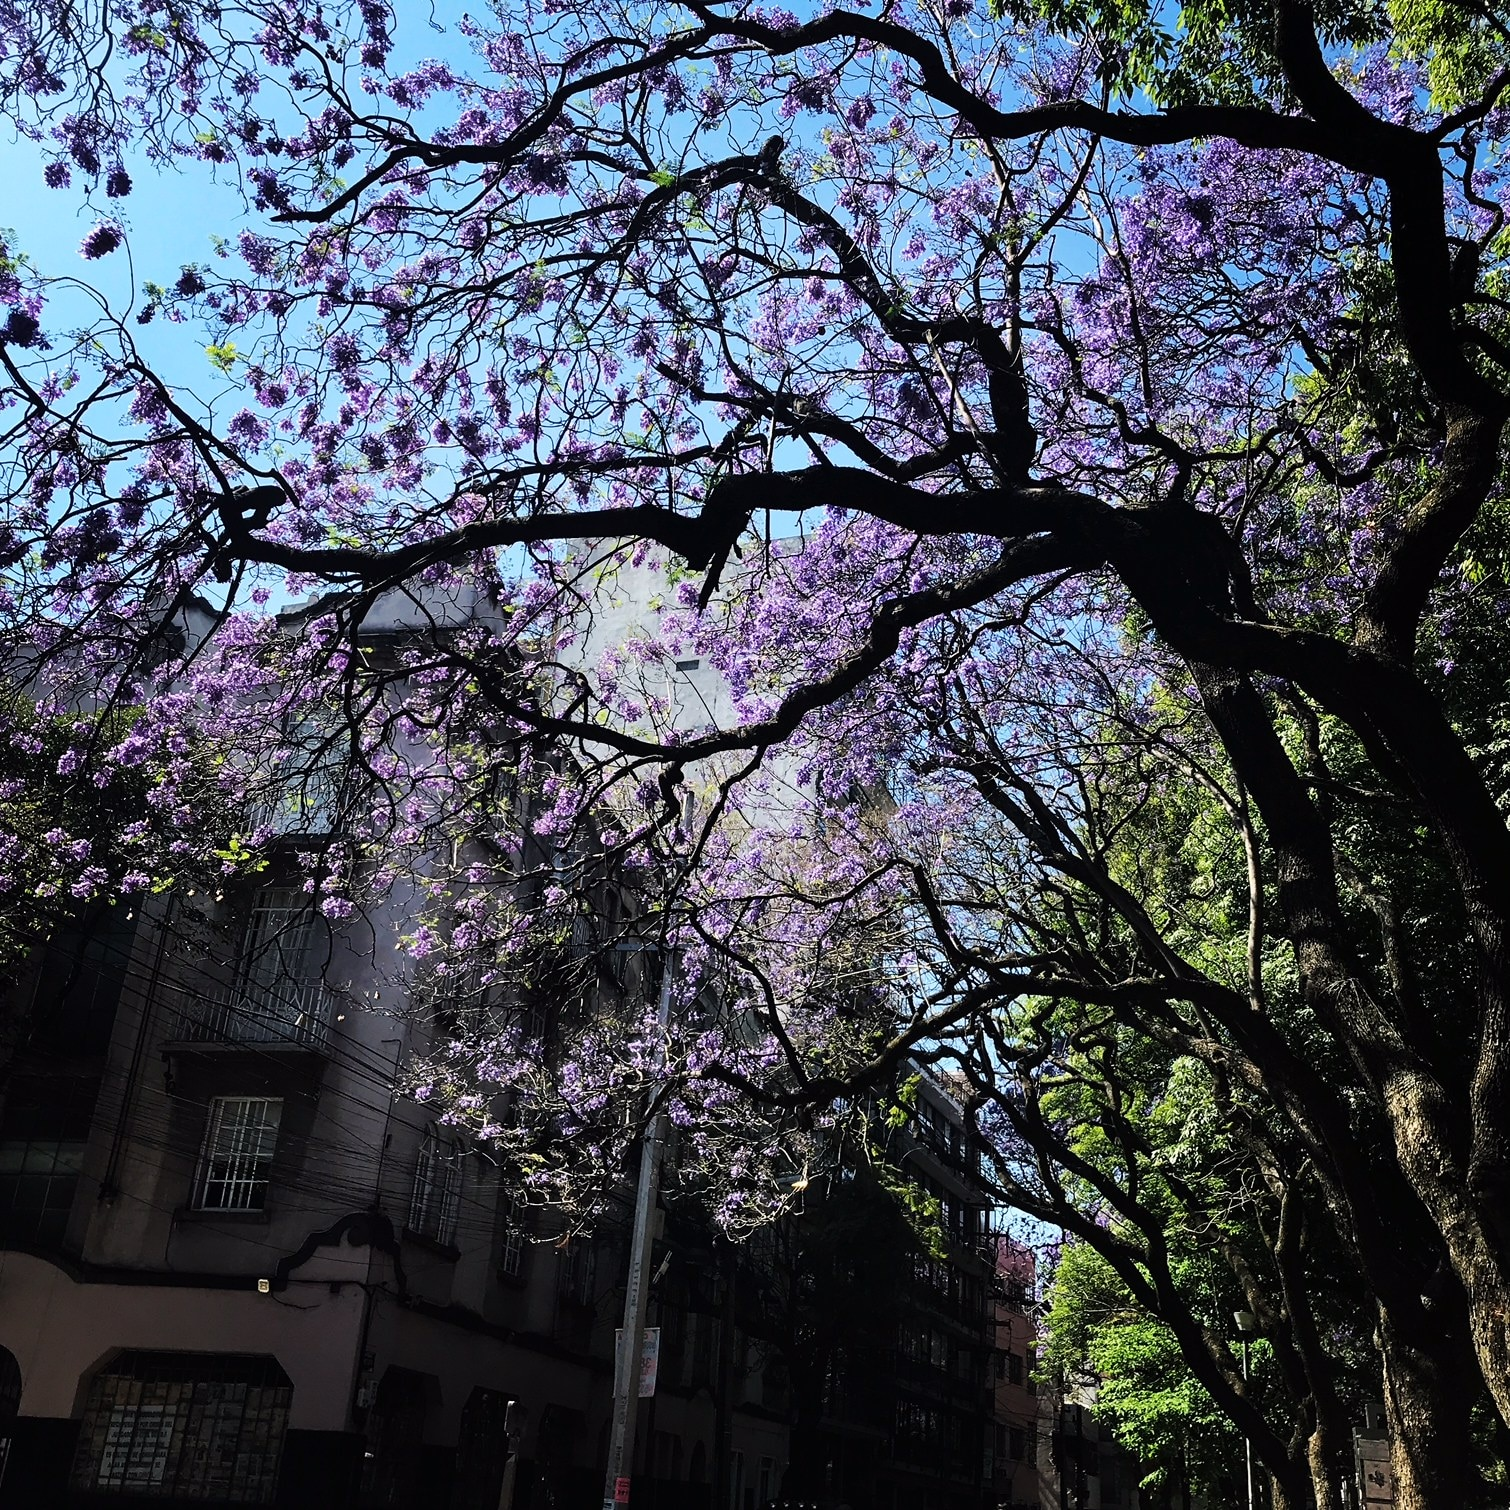 Spring in Mexico City is colored by purple jacaranda trees. For some it's the only beauty amid a contentious presidential campaign that ends July 1st.